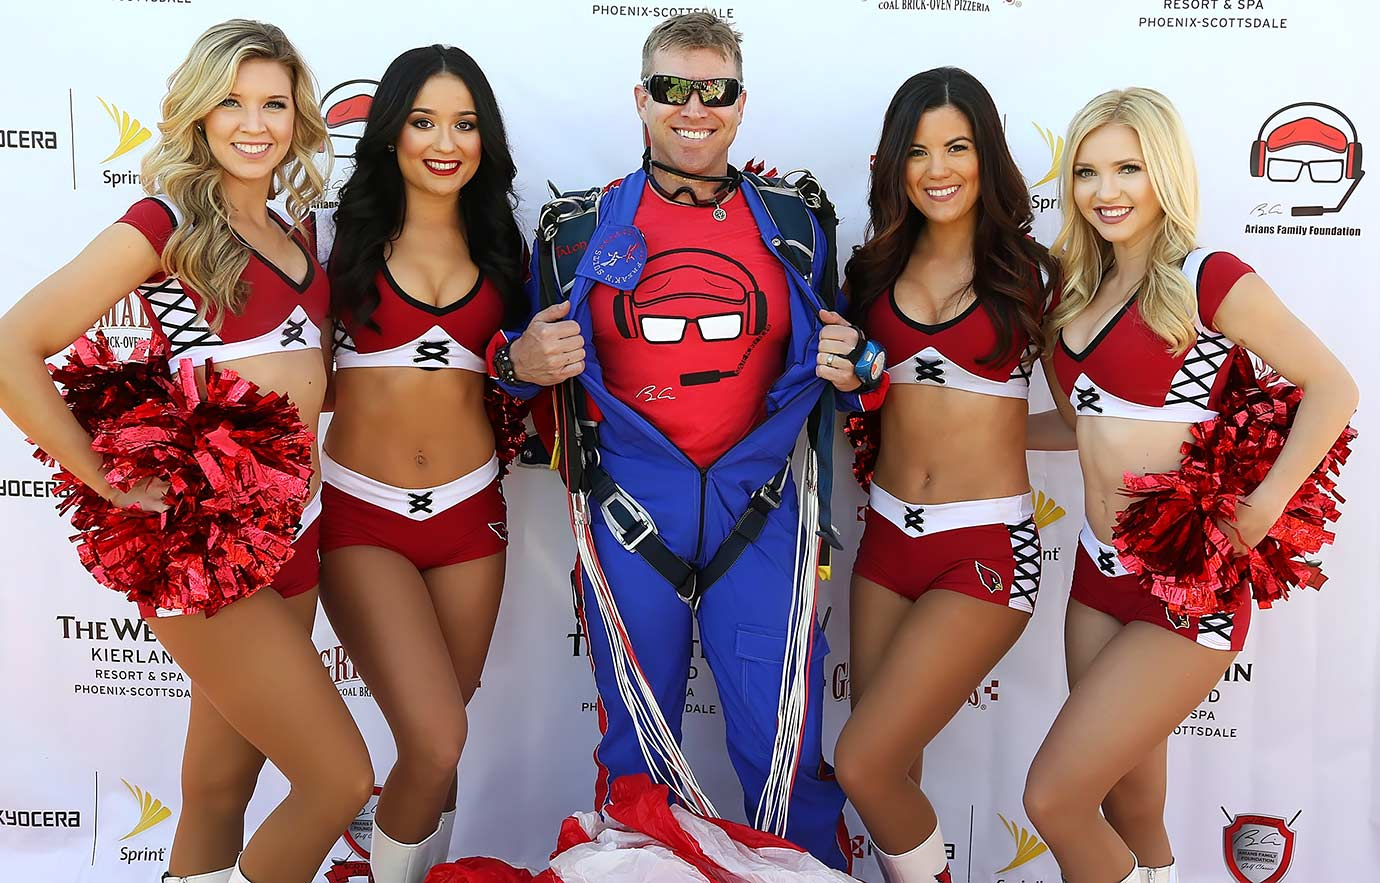 Arizona Cardinals cheerleaders pose with a parachute jumper as he shows off the new Arians Family Foundation logo in Superman fashion at the 3rd Annual Arians Family Foundation Arizona Celebrity Golf Classic in Scottsdale, Ariz.